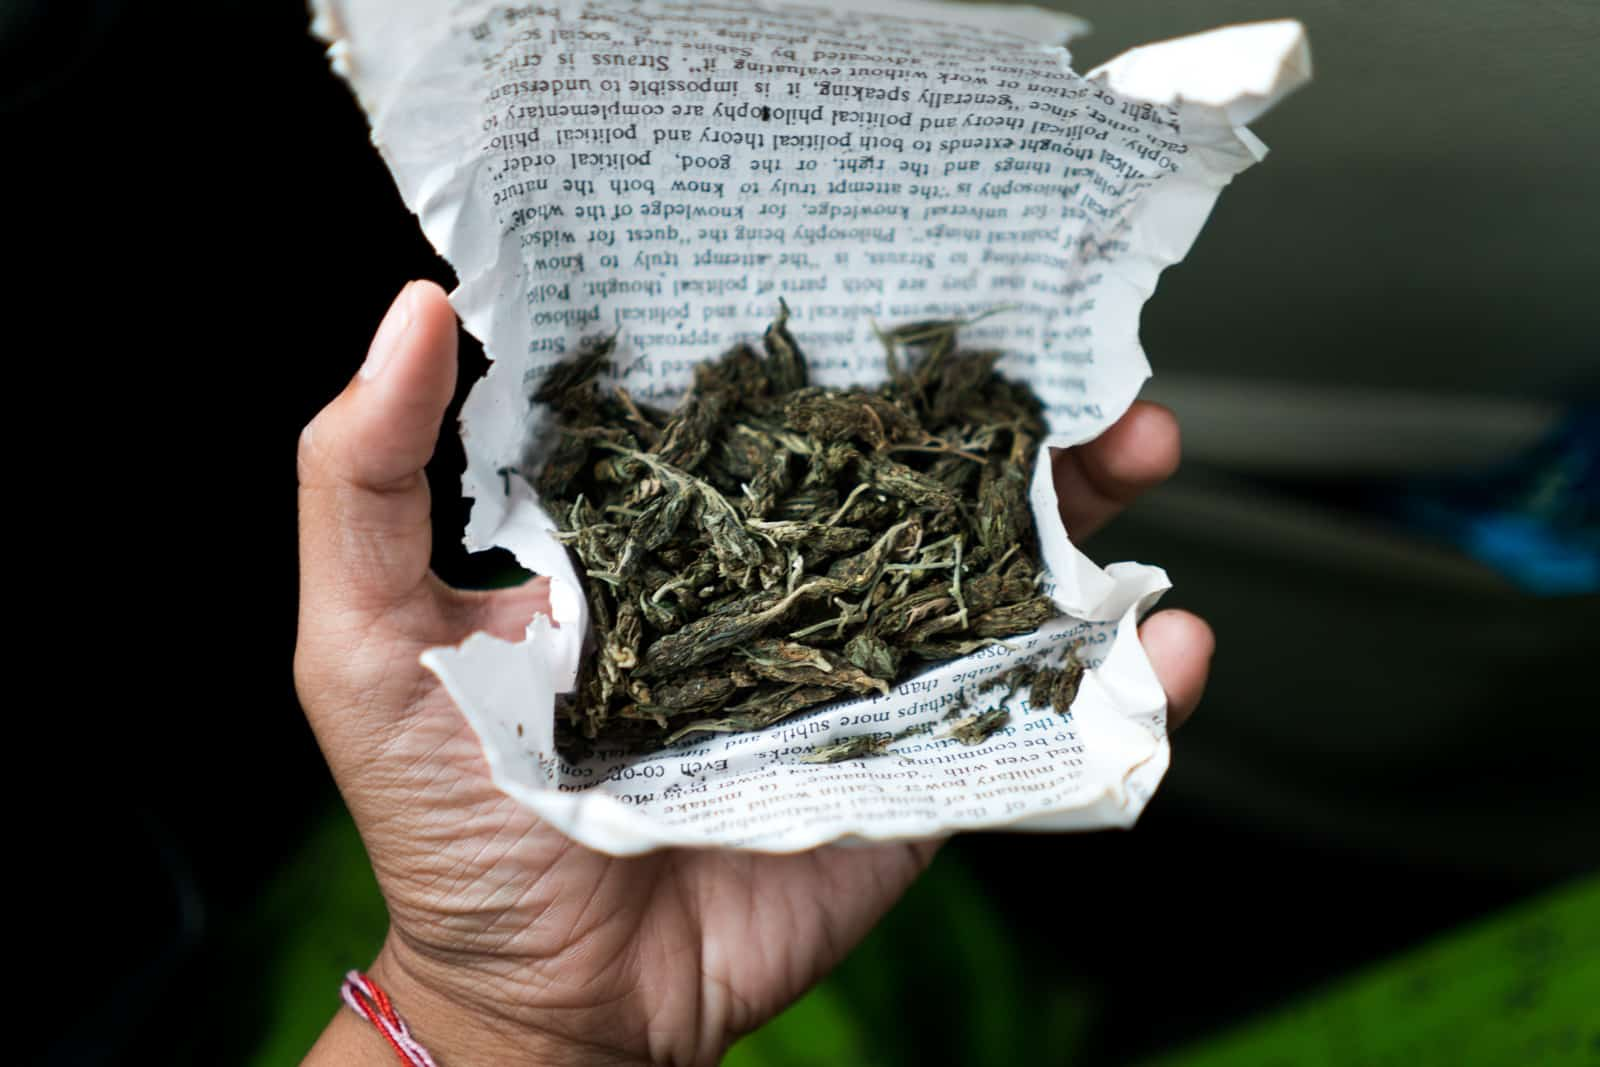 Guide to smoking weed in India - Good weed in Imphal, Manipur - Lost With Purpose travel blog